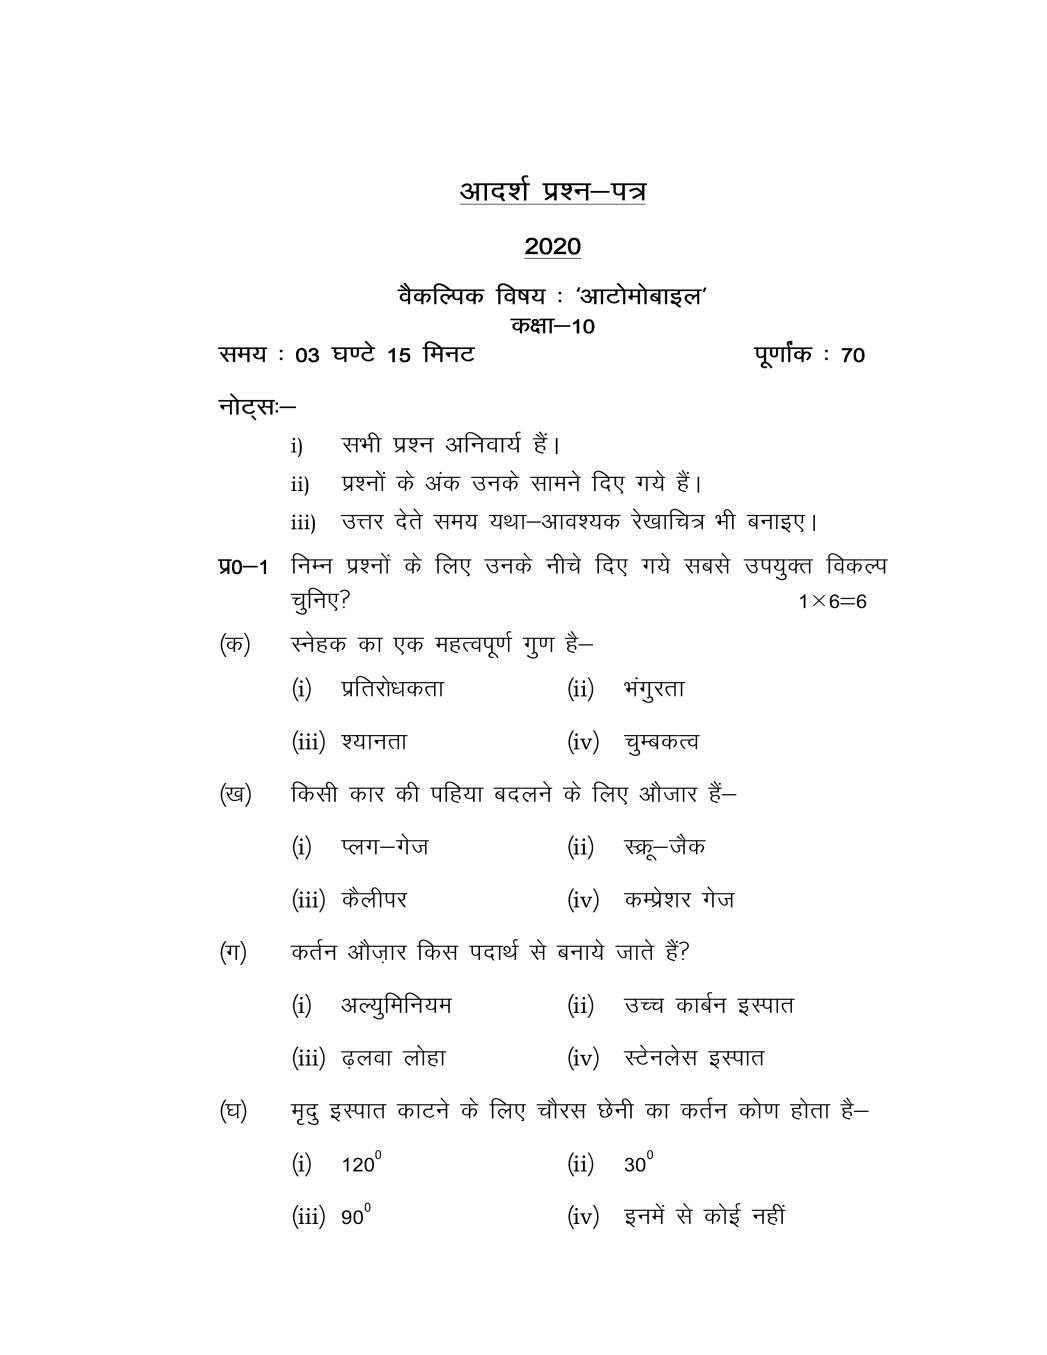 UP Board 2020 Class 10th Model Question Papers for Automobile